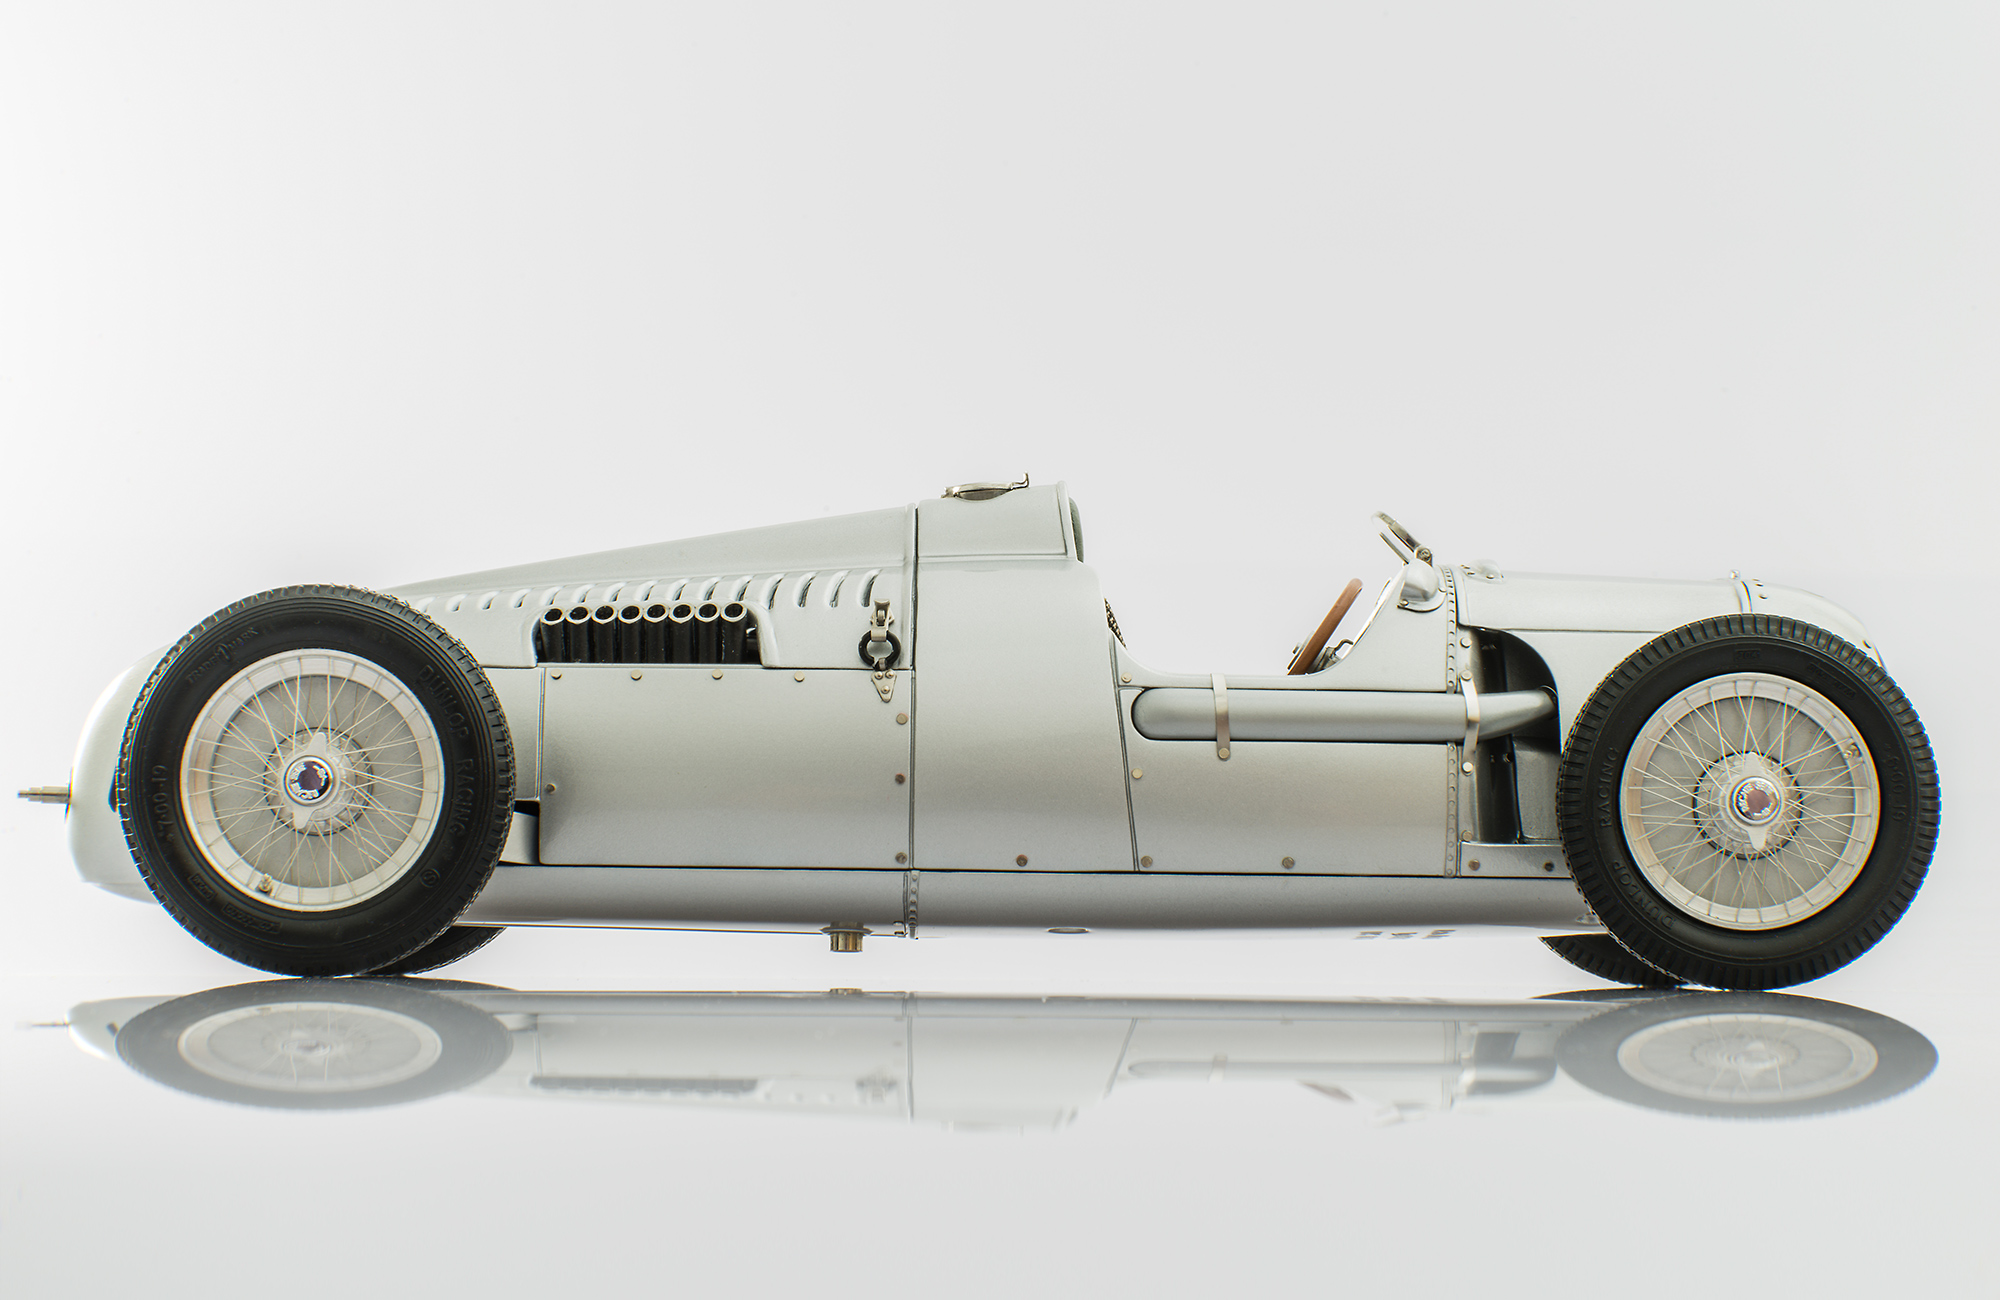 Auto union type photo - 5